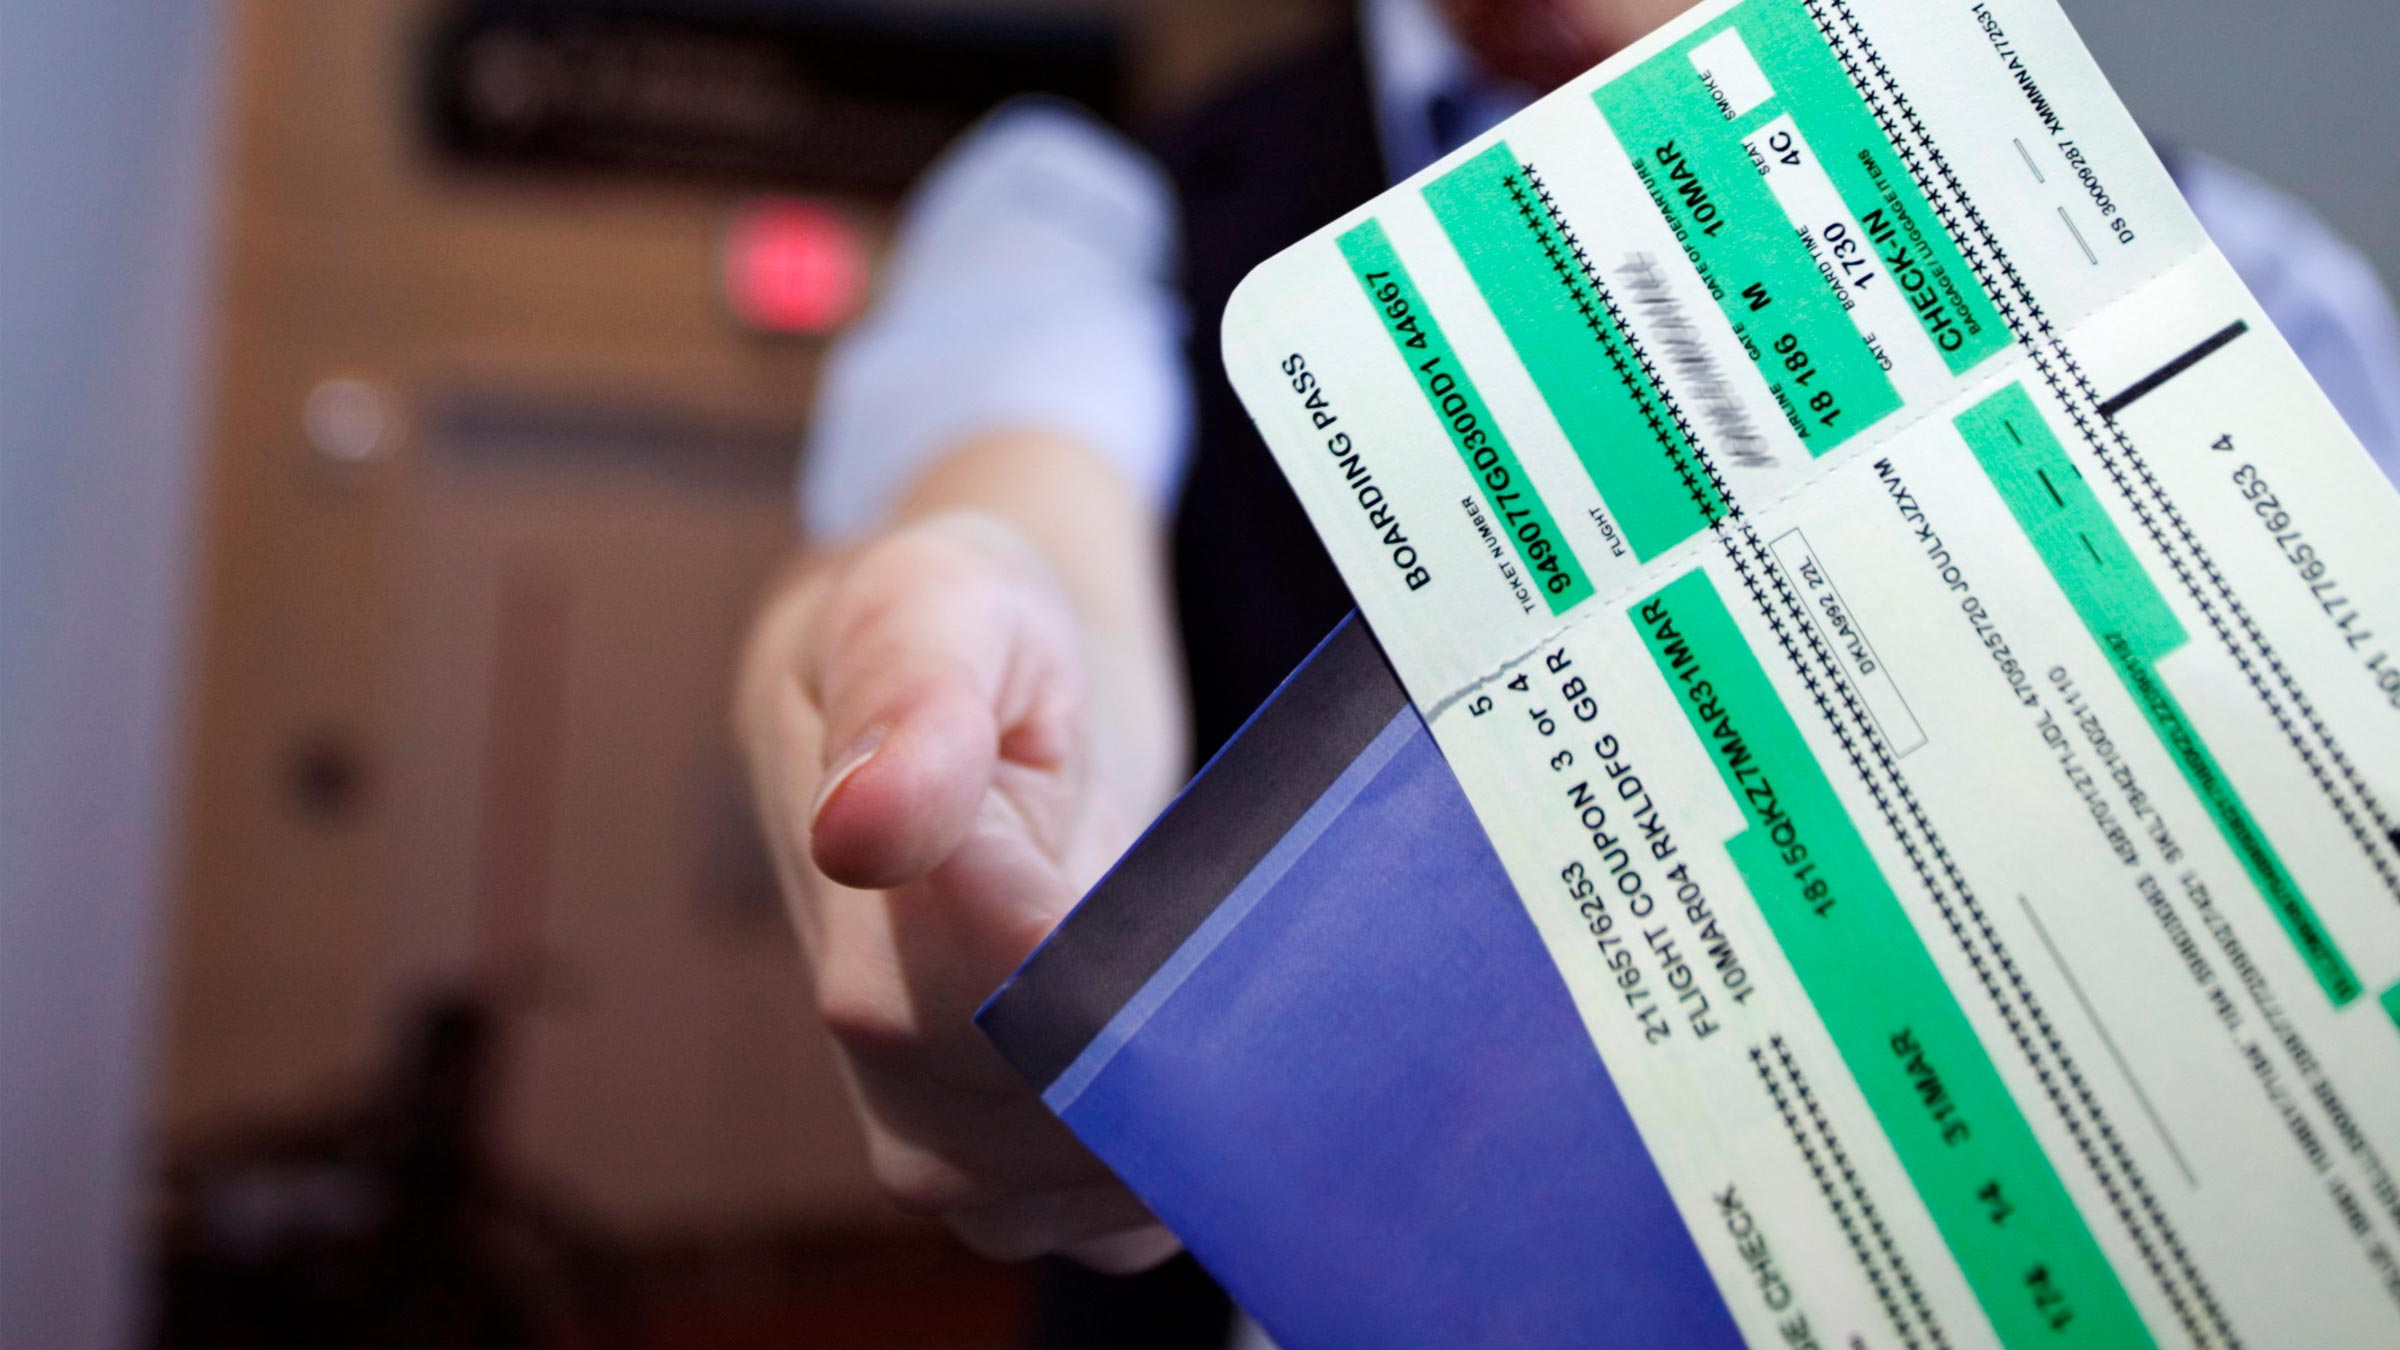 Hand reaches out to accept boarding pass